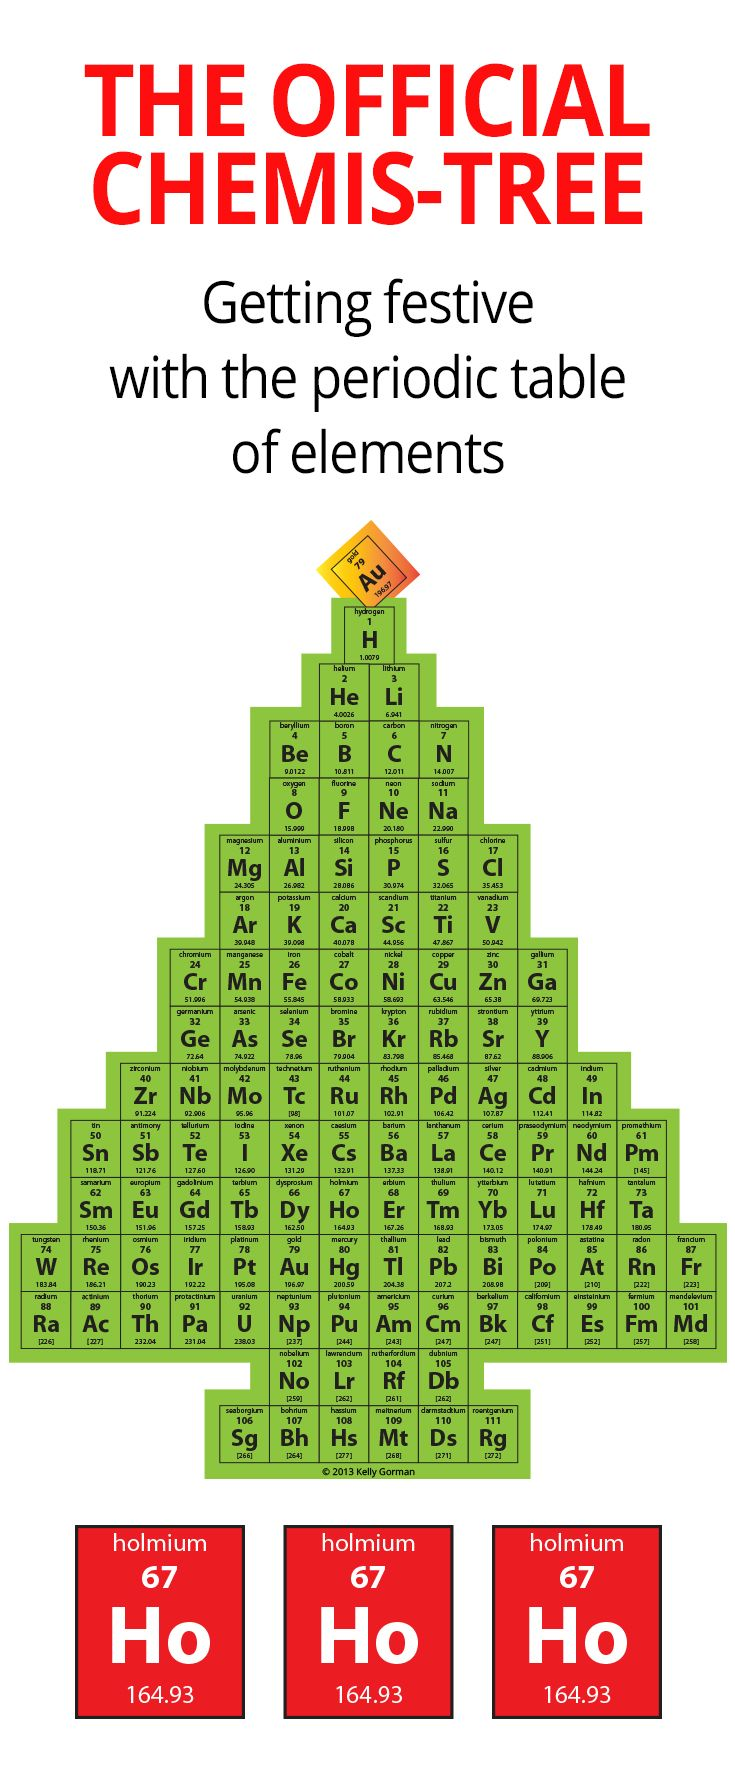 Christmas fun with the periodic table of elements the official christmas fun with the periodic table of elements the official chemis tree urtaz Images